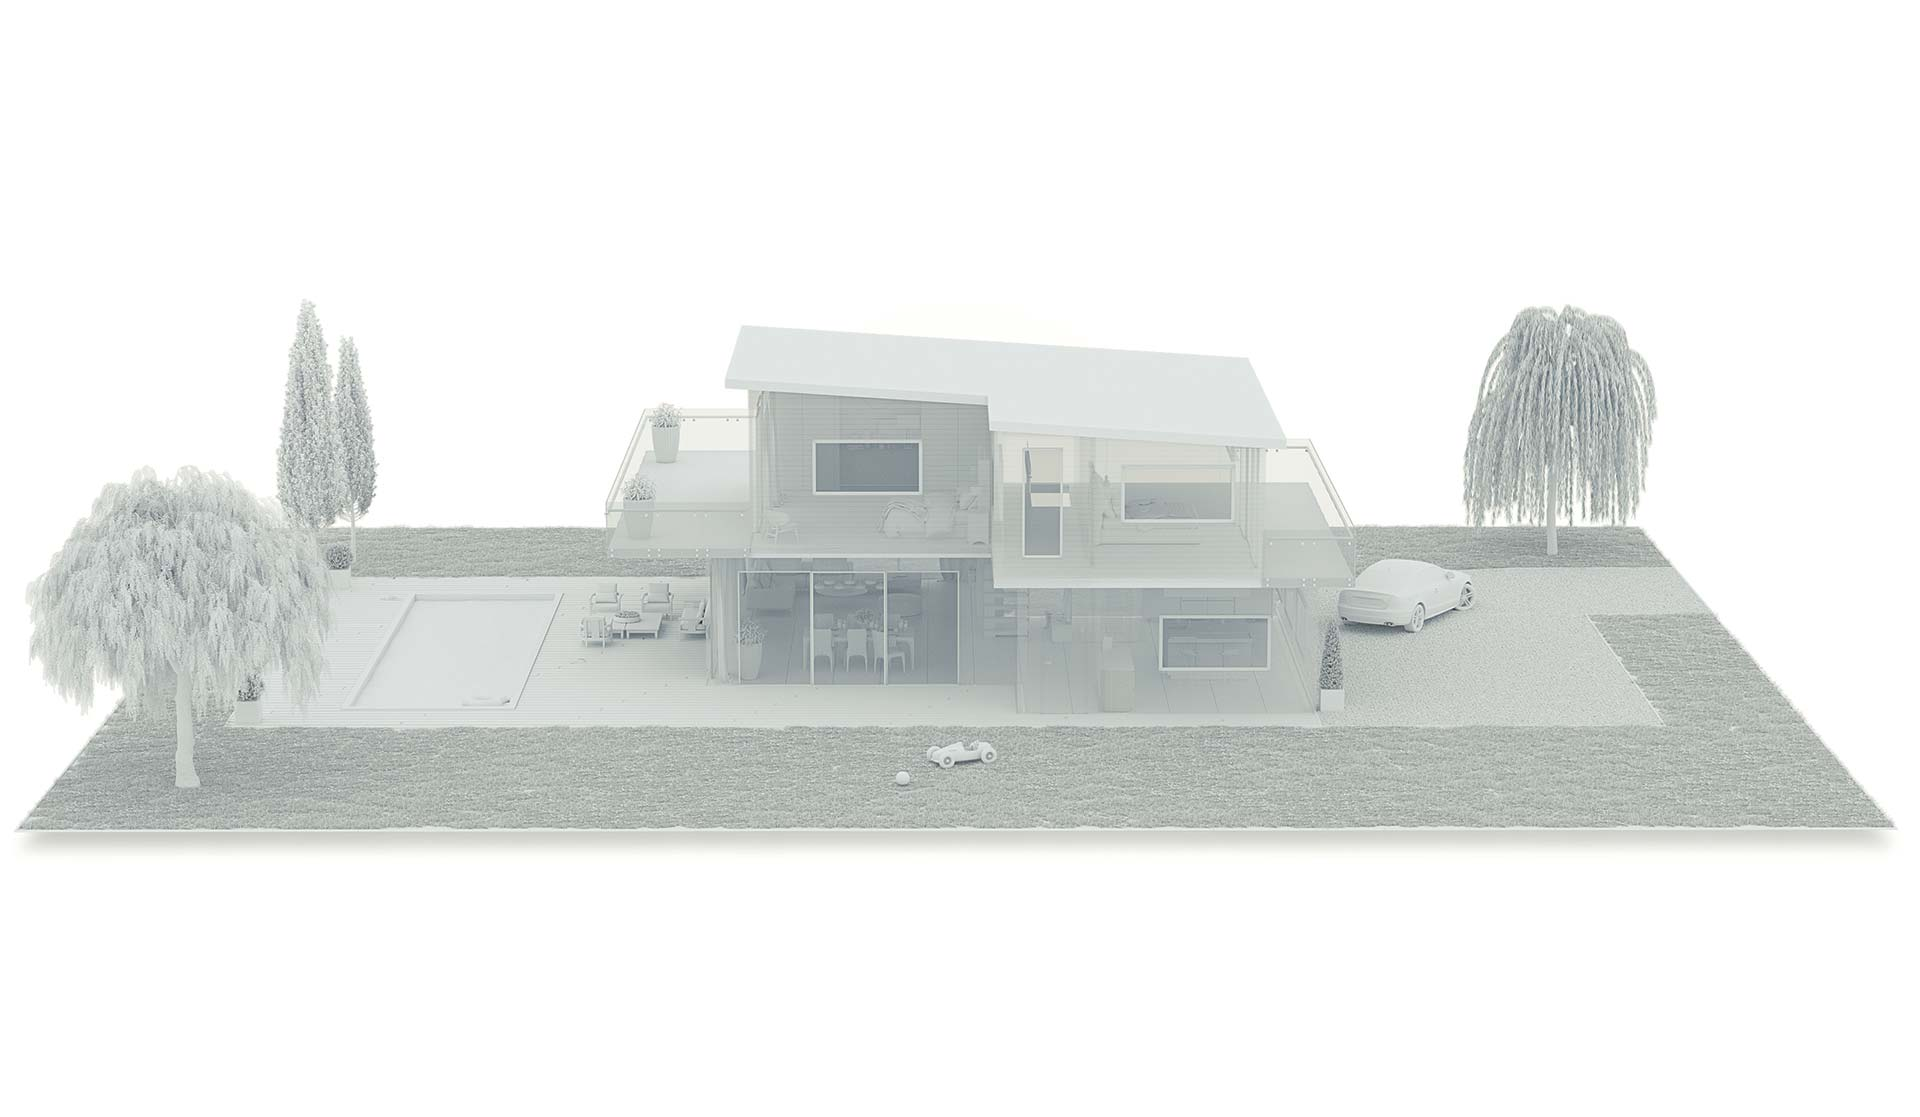 Hager Axo - Perspective 3D maison